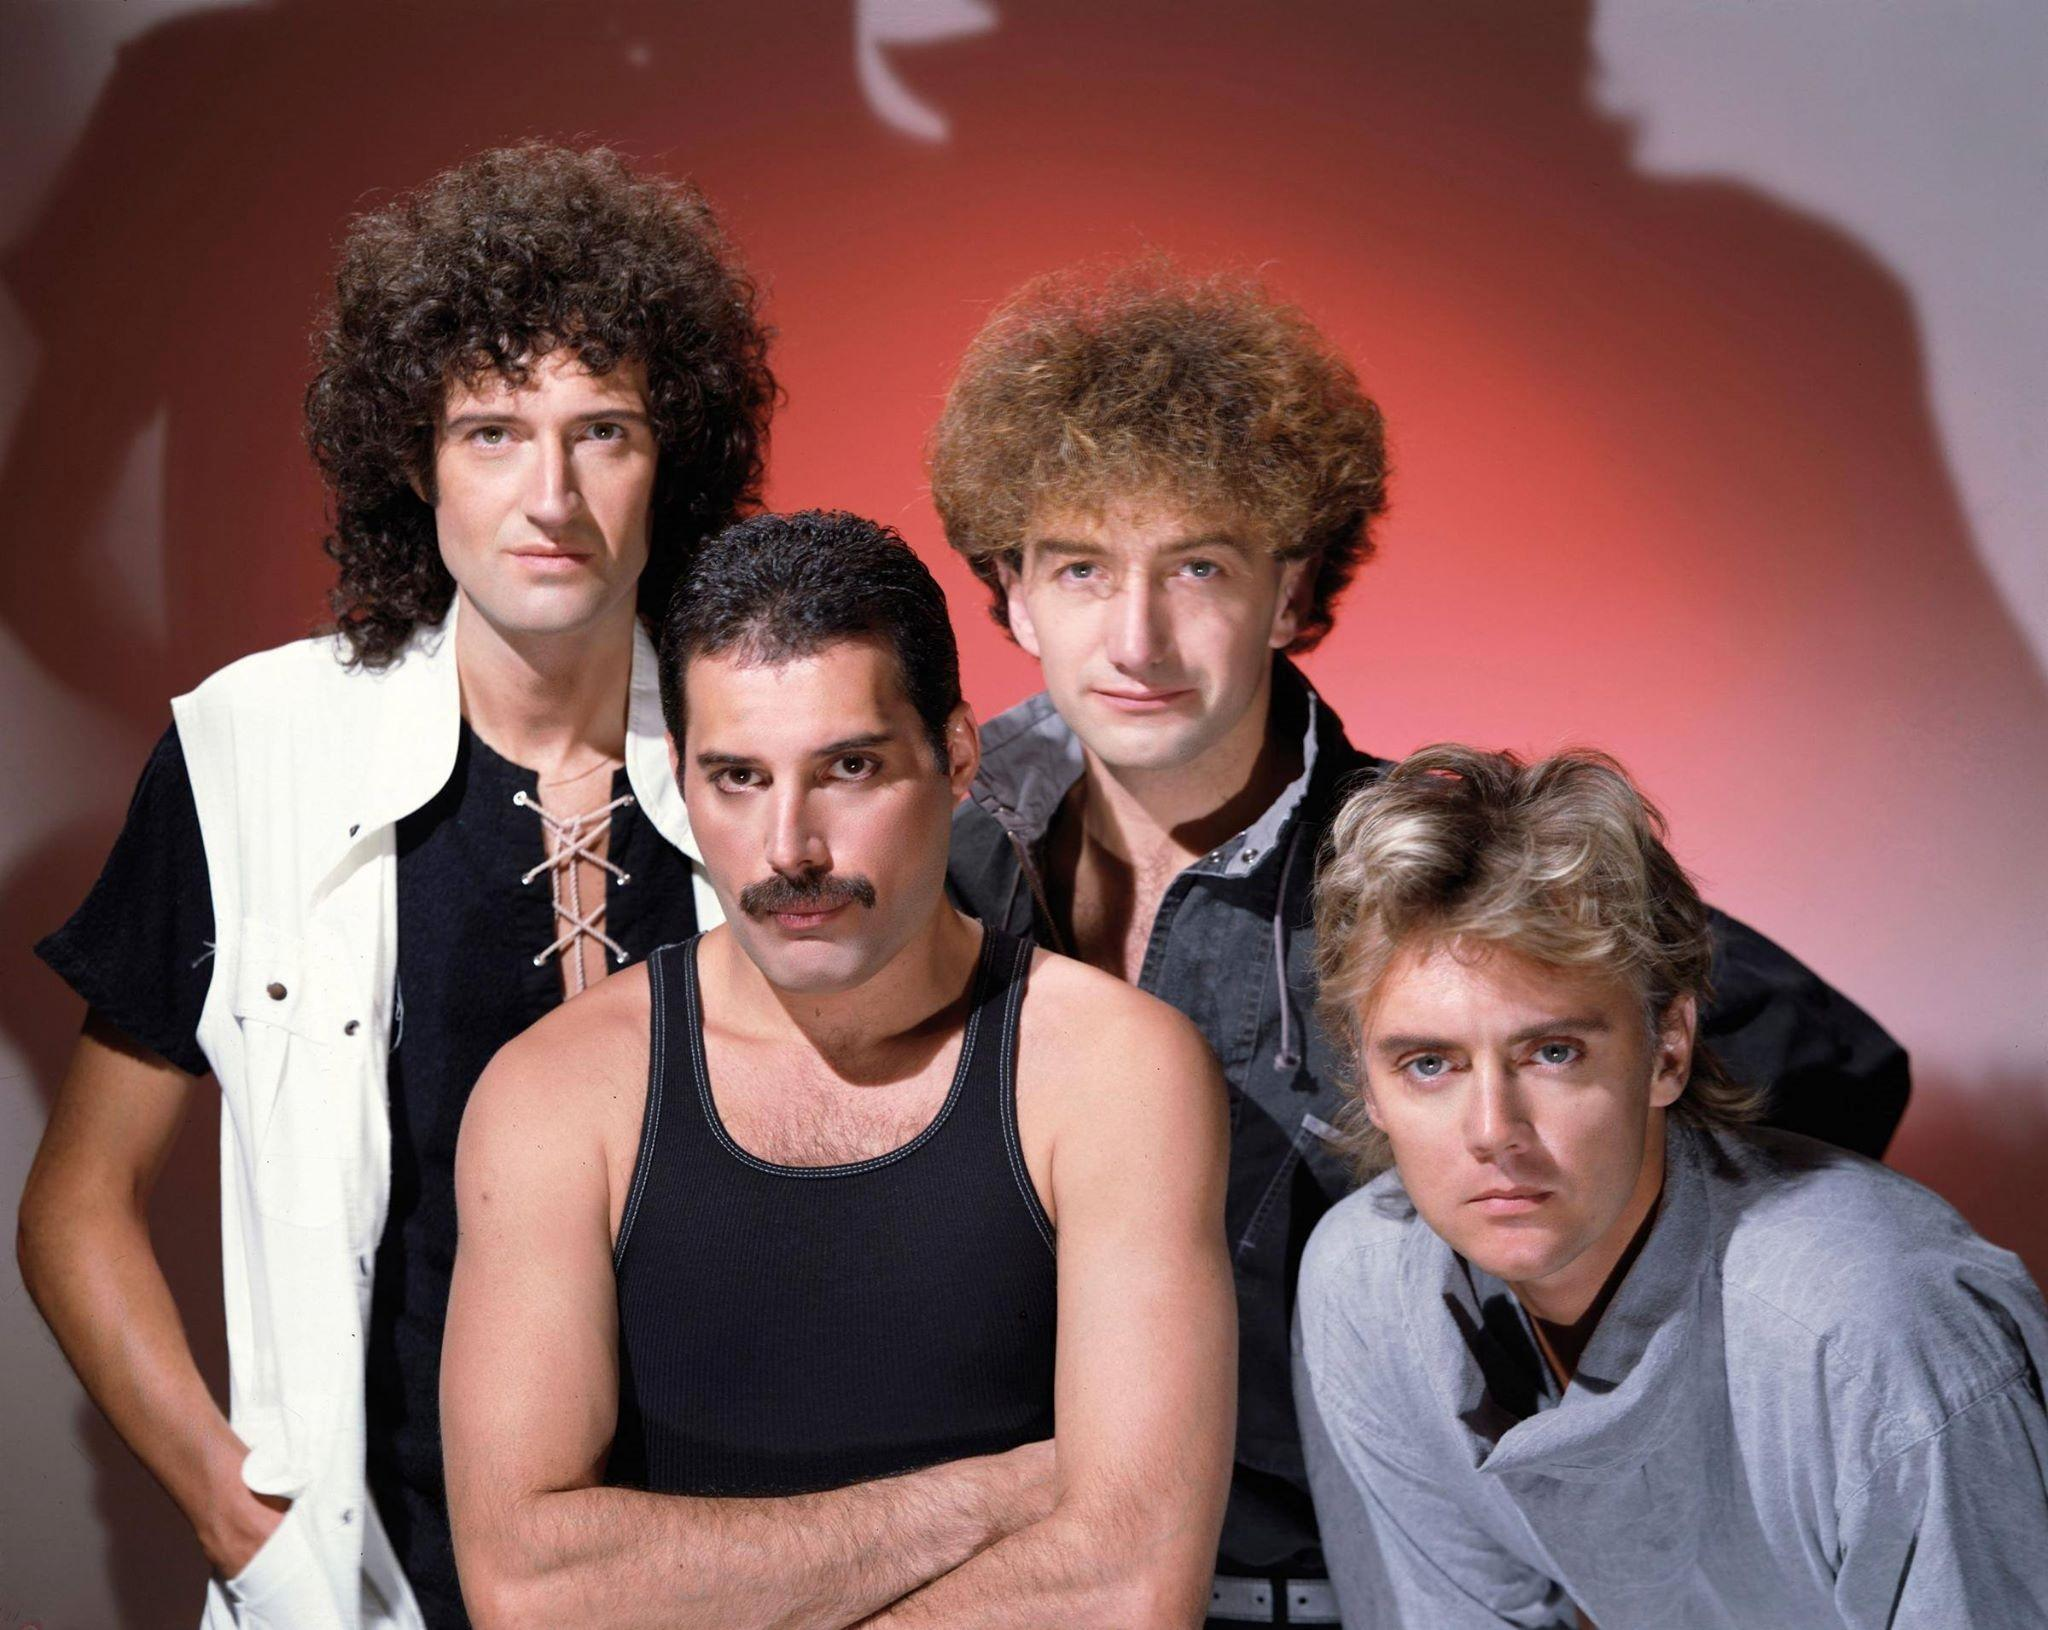 Who is your favorite Queen member?